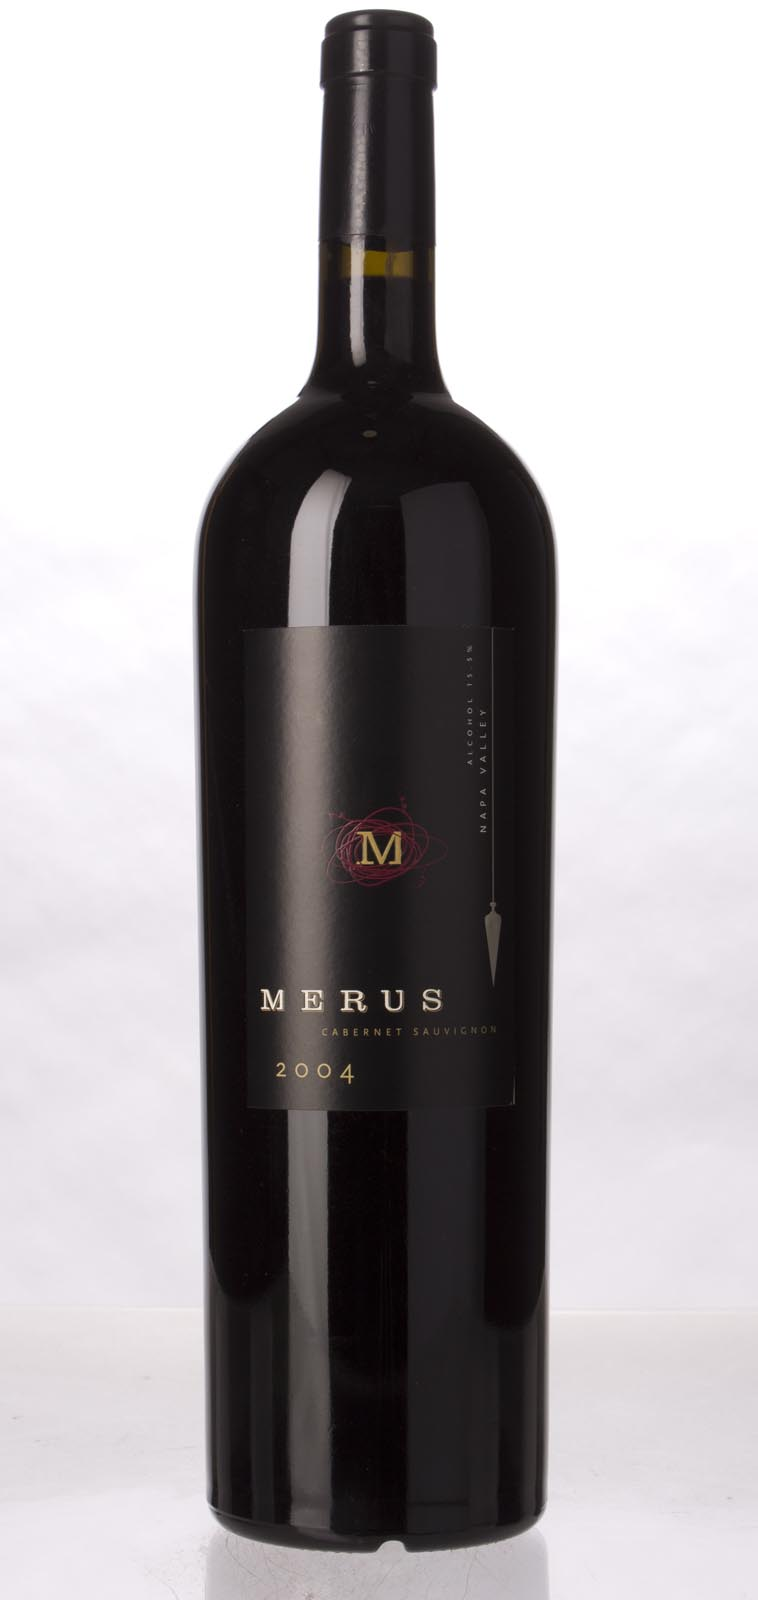 Merus Cabernet Sauvignon Napa Valley 2004, 1.5L (WA94, WS96) from The BPW - Merchants of rare and fine wines.